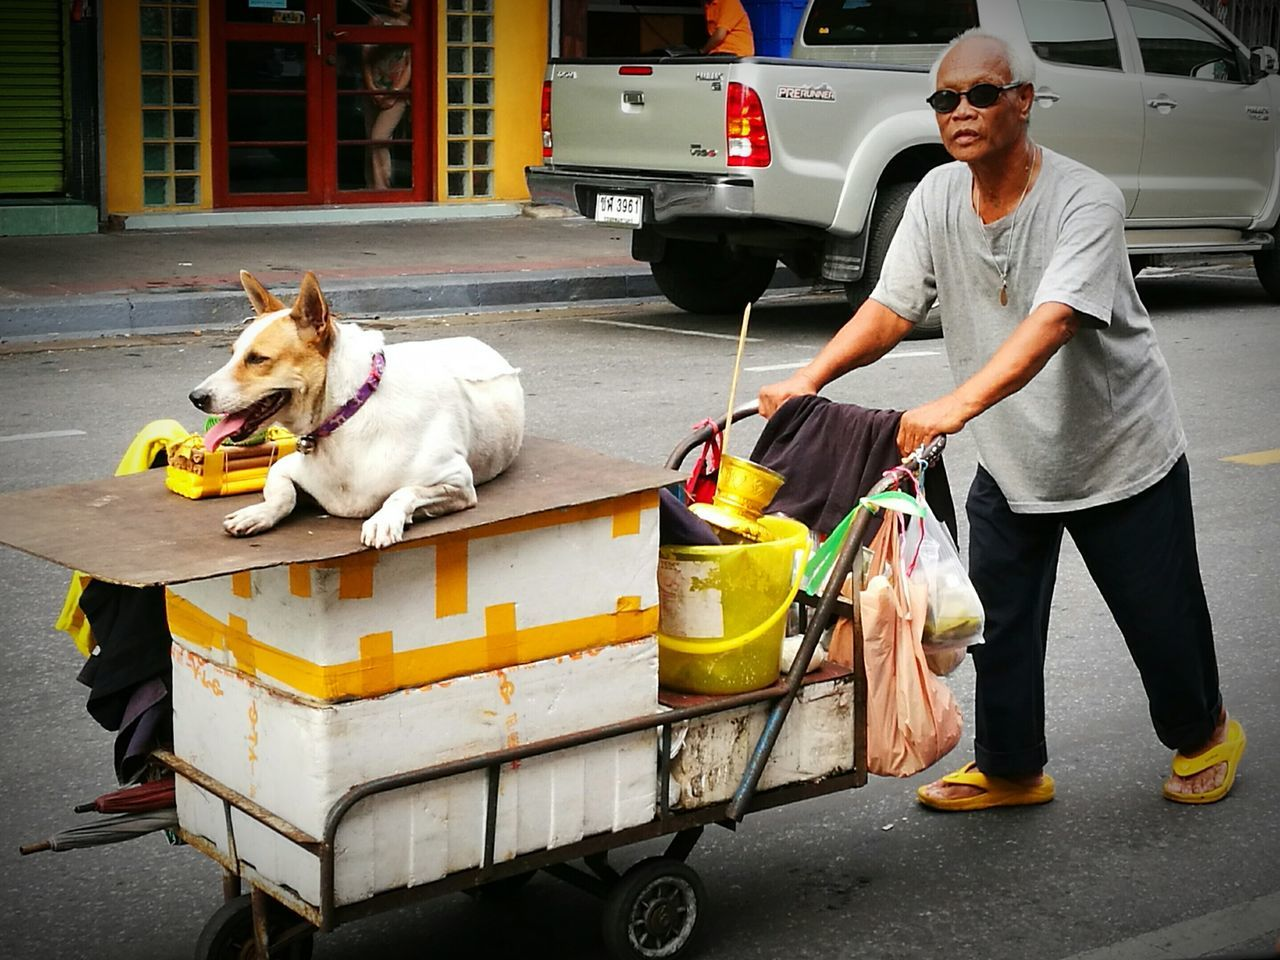 The man, the dog and his trolley Pet Owner Dog Pets Animal Domestic Animals Streetphotographer Street Photography Streetphotography City Life Street Bangkok Streetphotography Thailand Bangkok Colour Photography Color Photography Eyeemphotography EyeEm Gallery EyeEmBestPics EyeEm Best Shots EyeEm Traveling Home For The Holidays